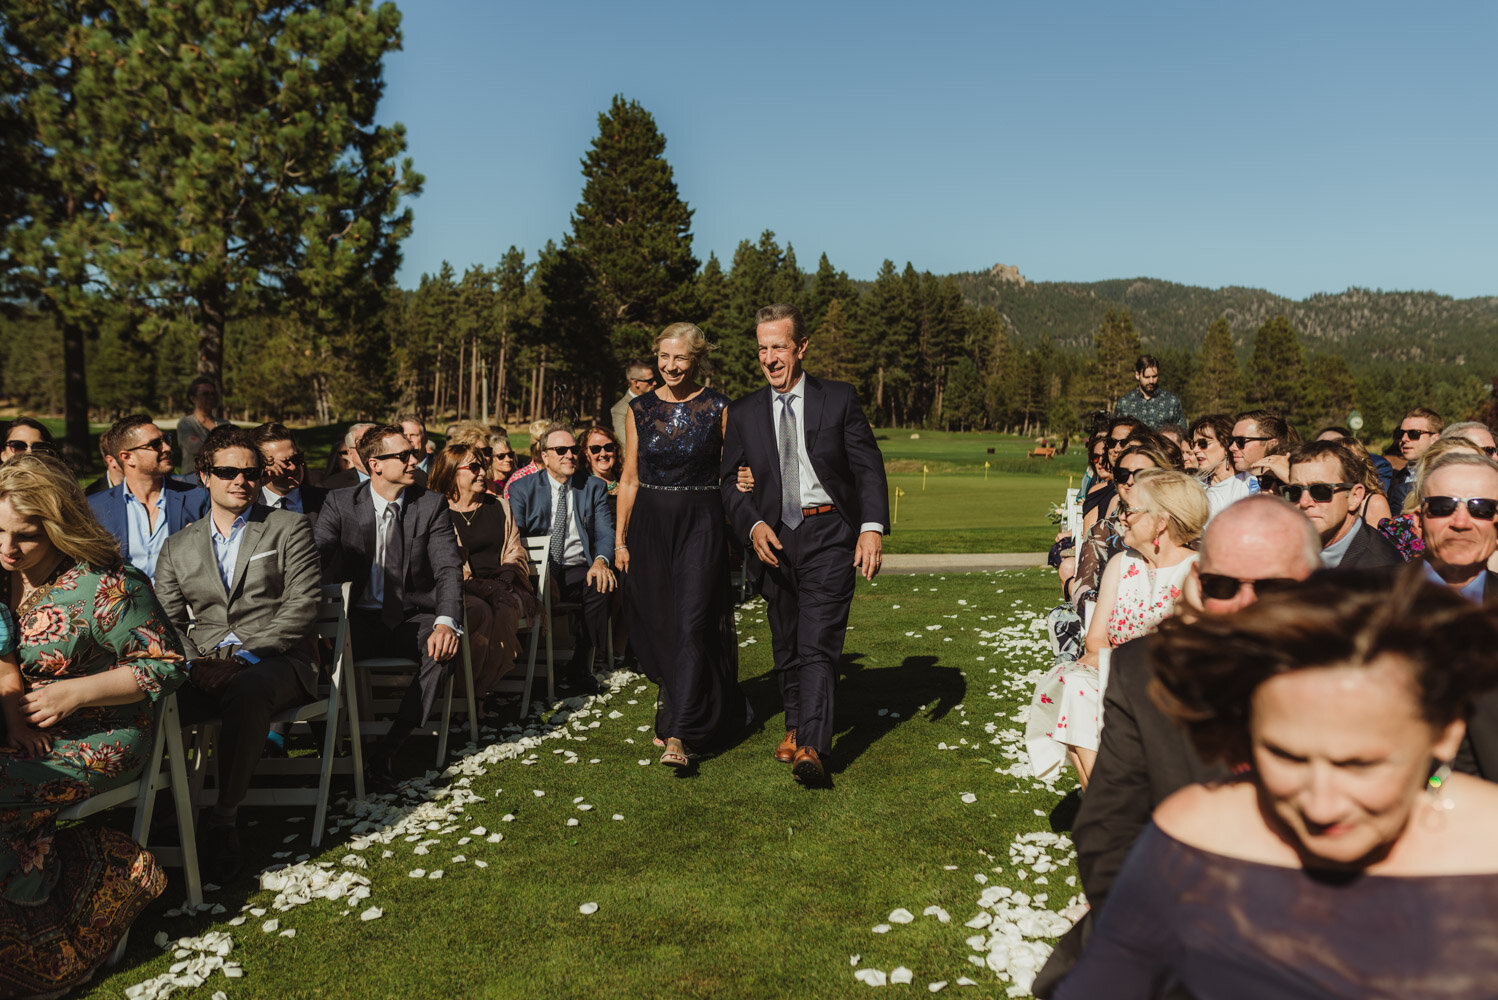 Edgewood Tahoe Wedding, photo of brides parents walking down the aisle